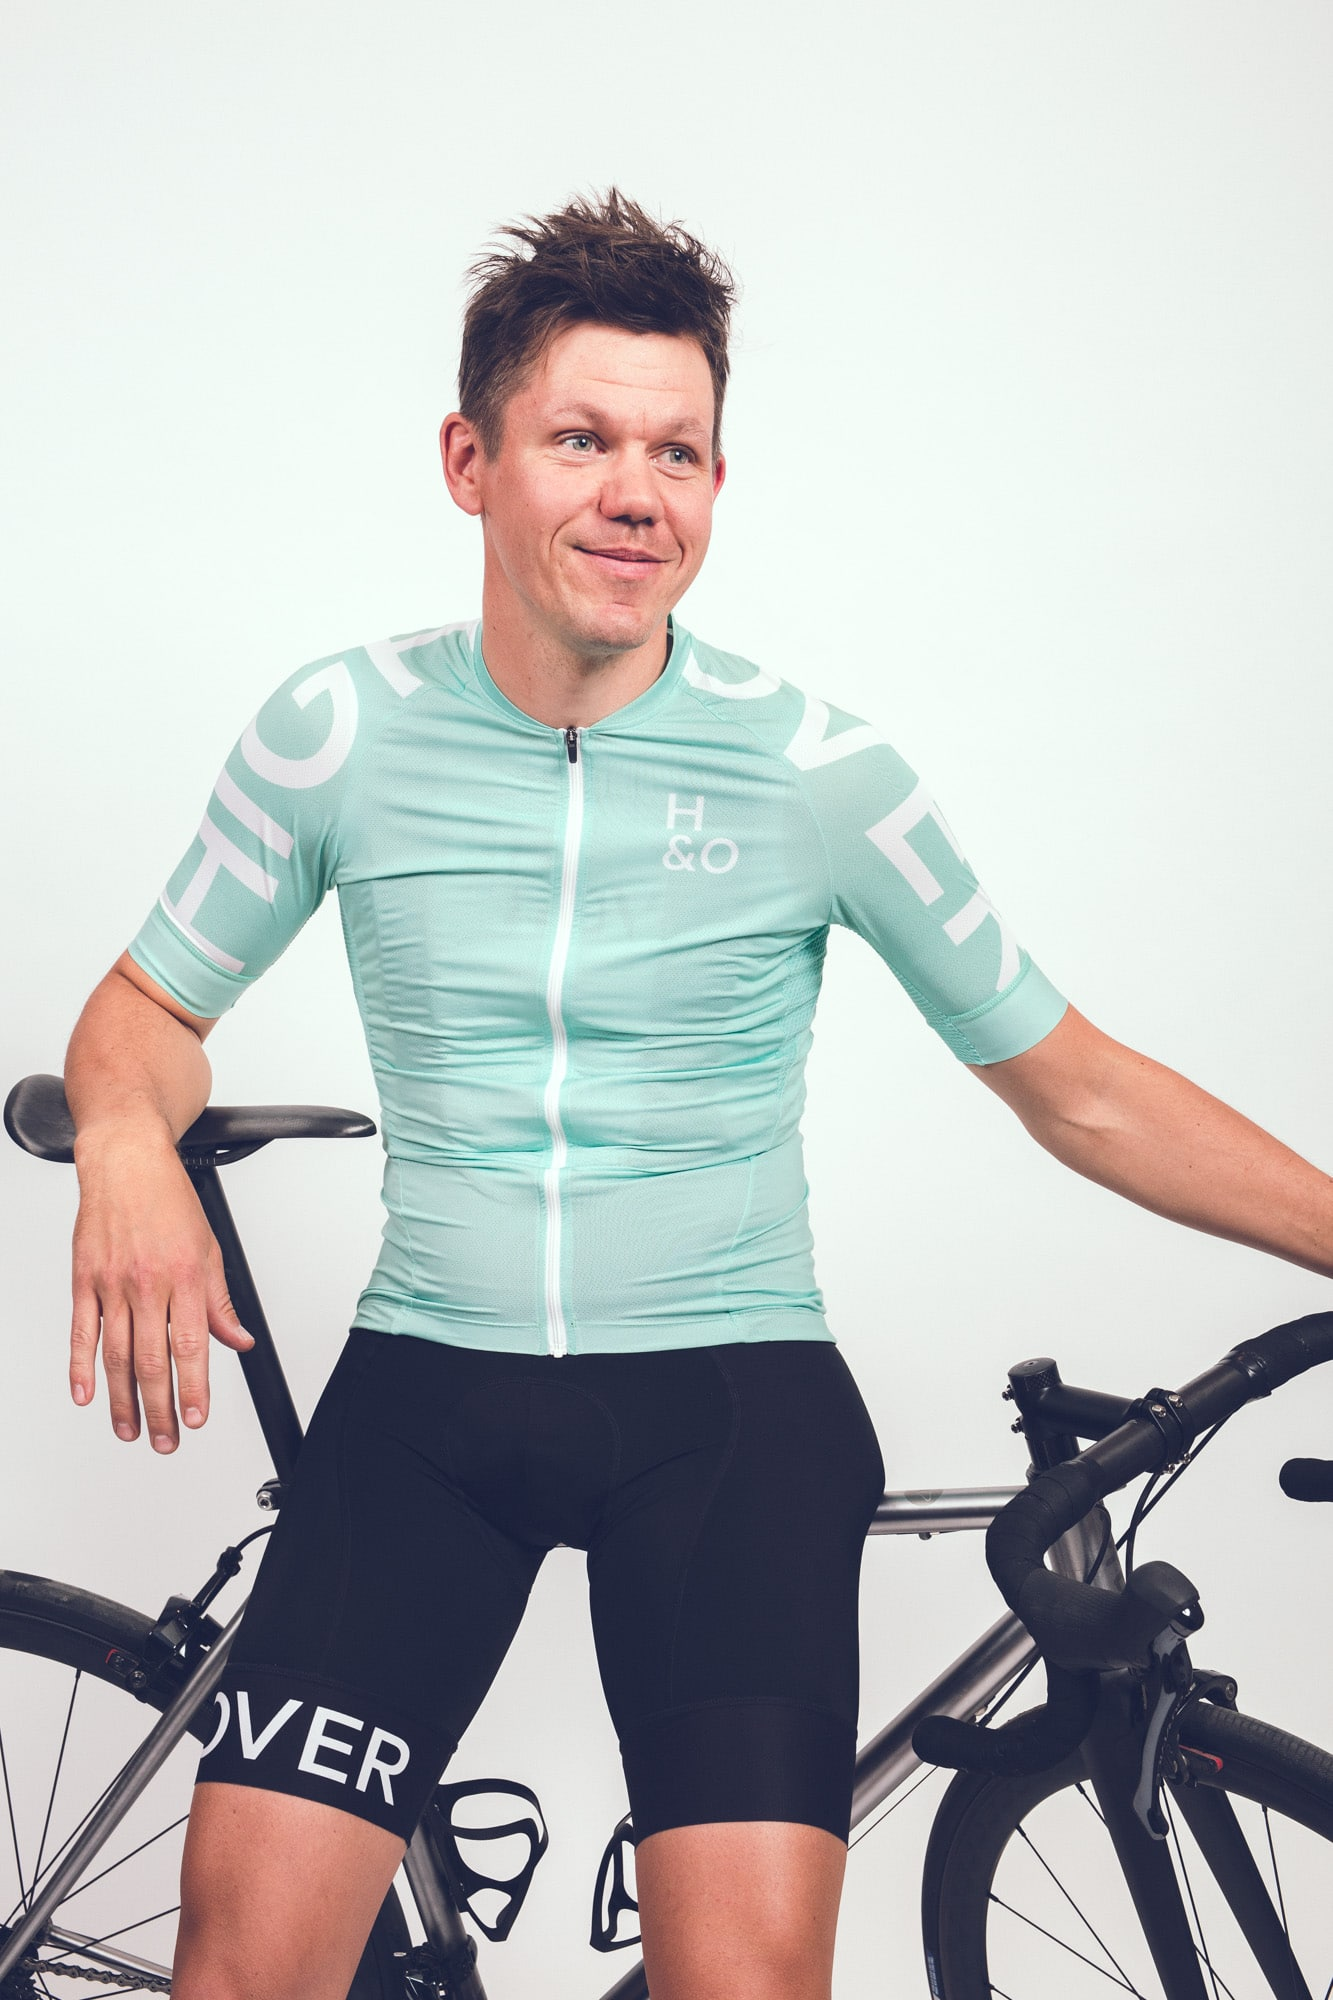 HIGH and OVER copper green cycling jersey